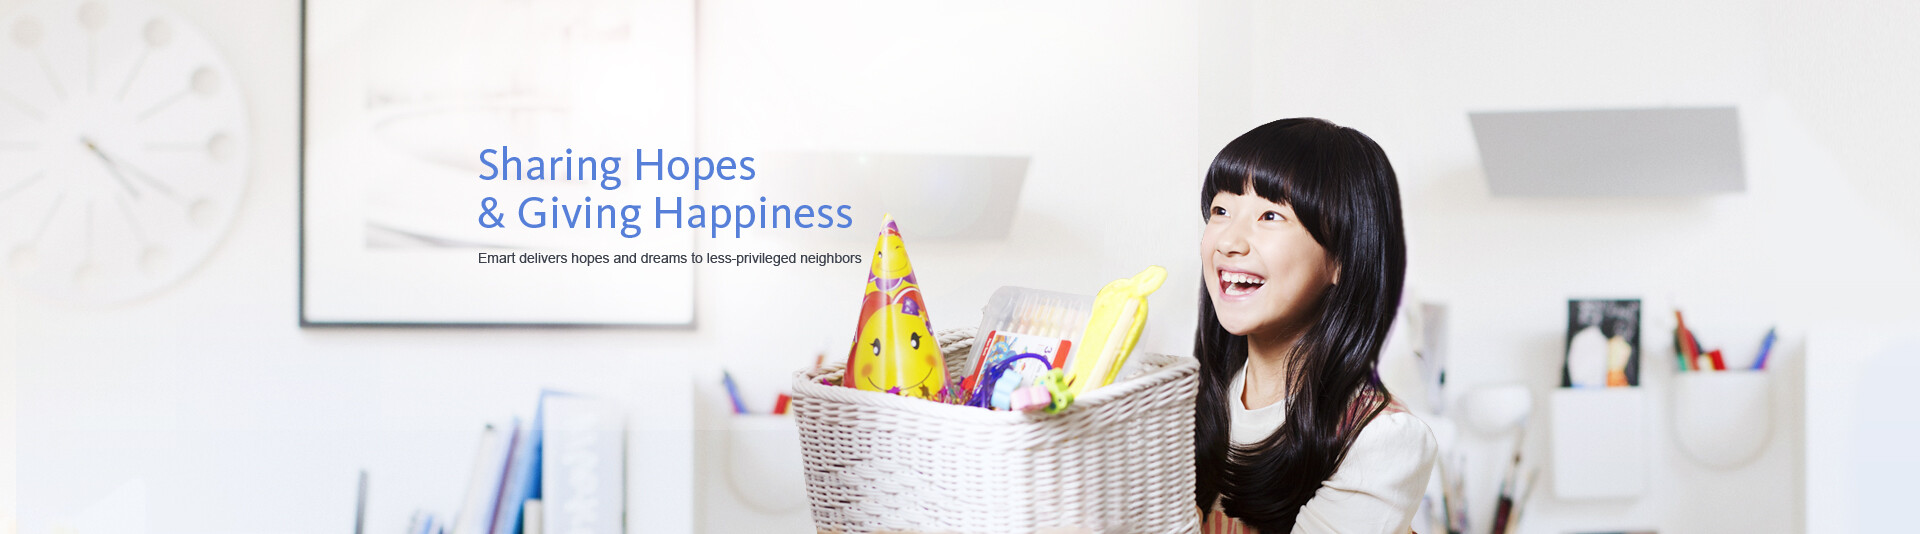 Sharing Hopes & Giving Happiness Emart delivers hopes and dreams to less-privileged neighbors